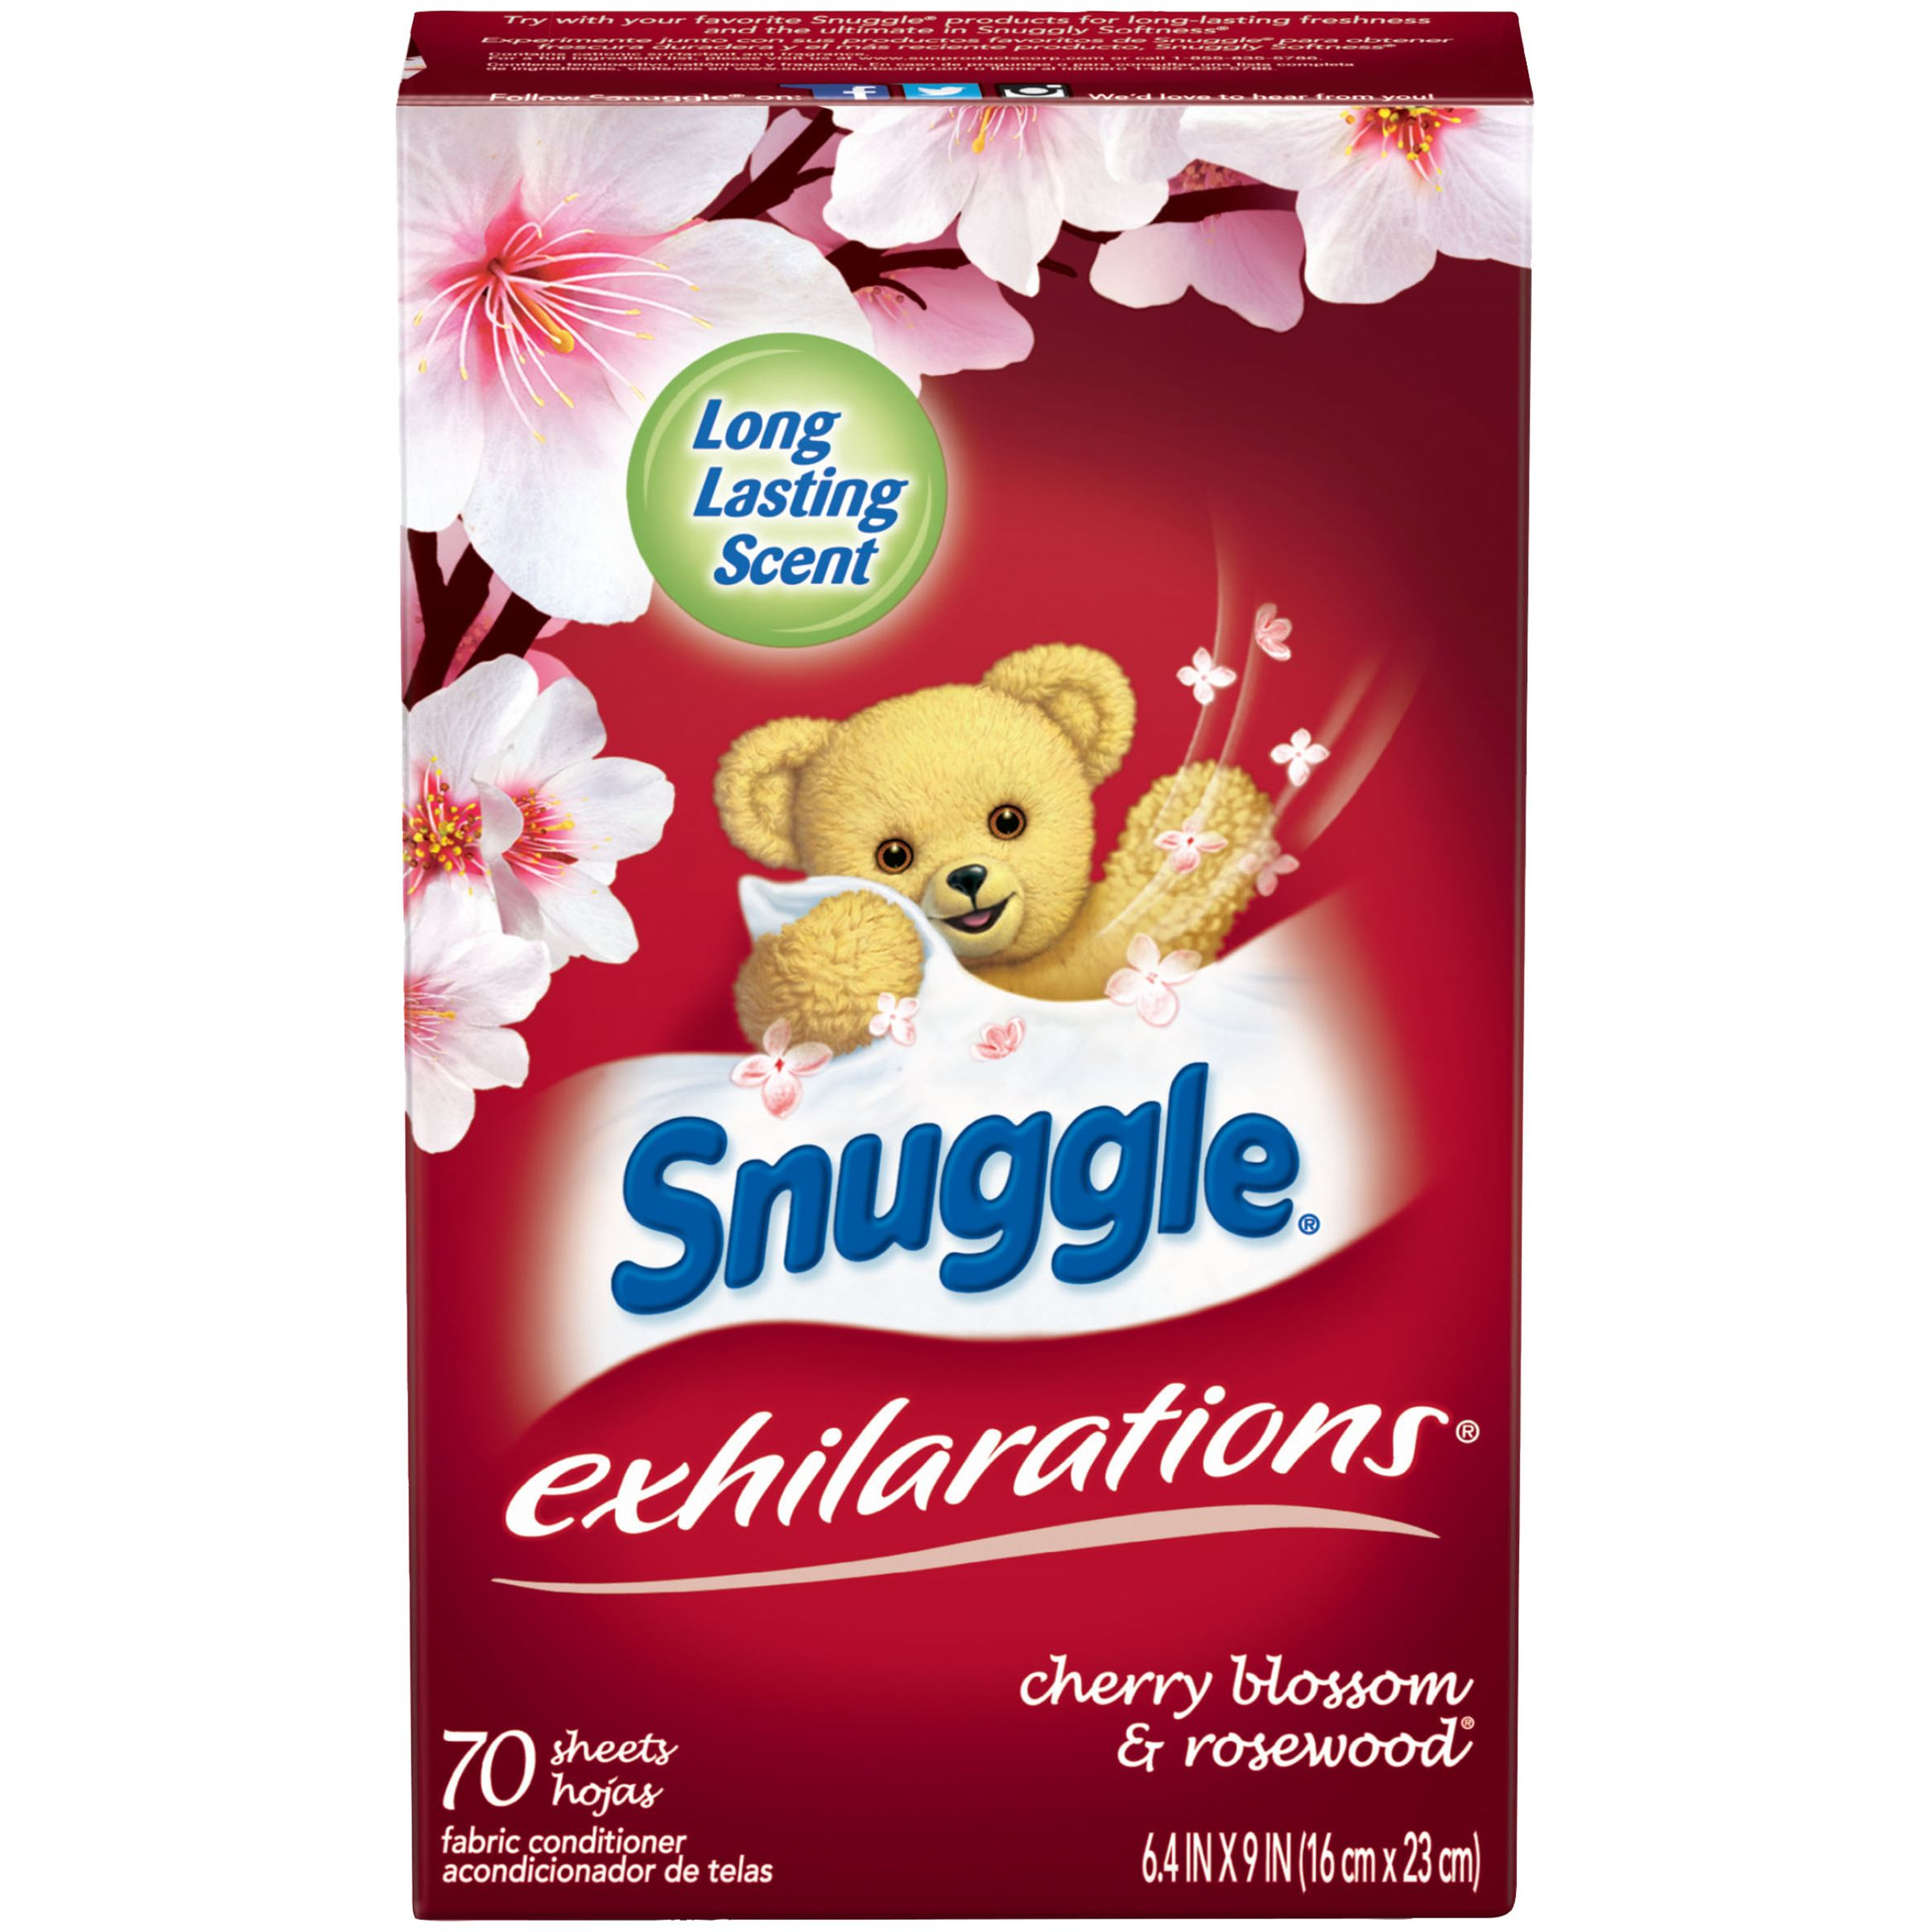 Snuggle Exhilarations Dryer Sheets, Cherry Blossom & Rosewood, 70 Count